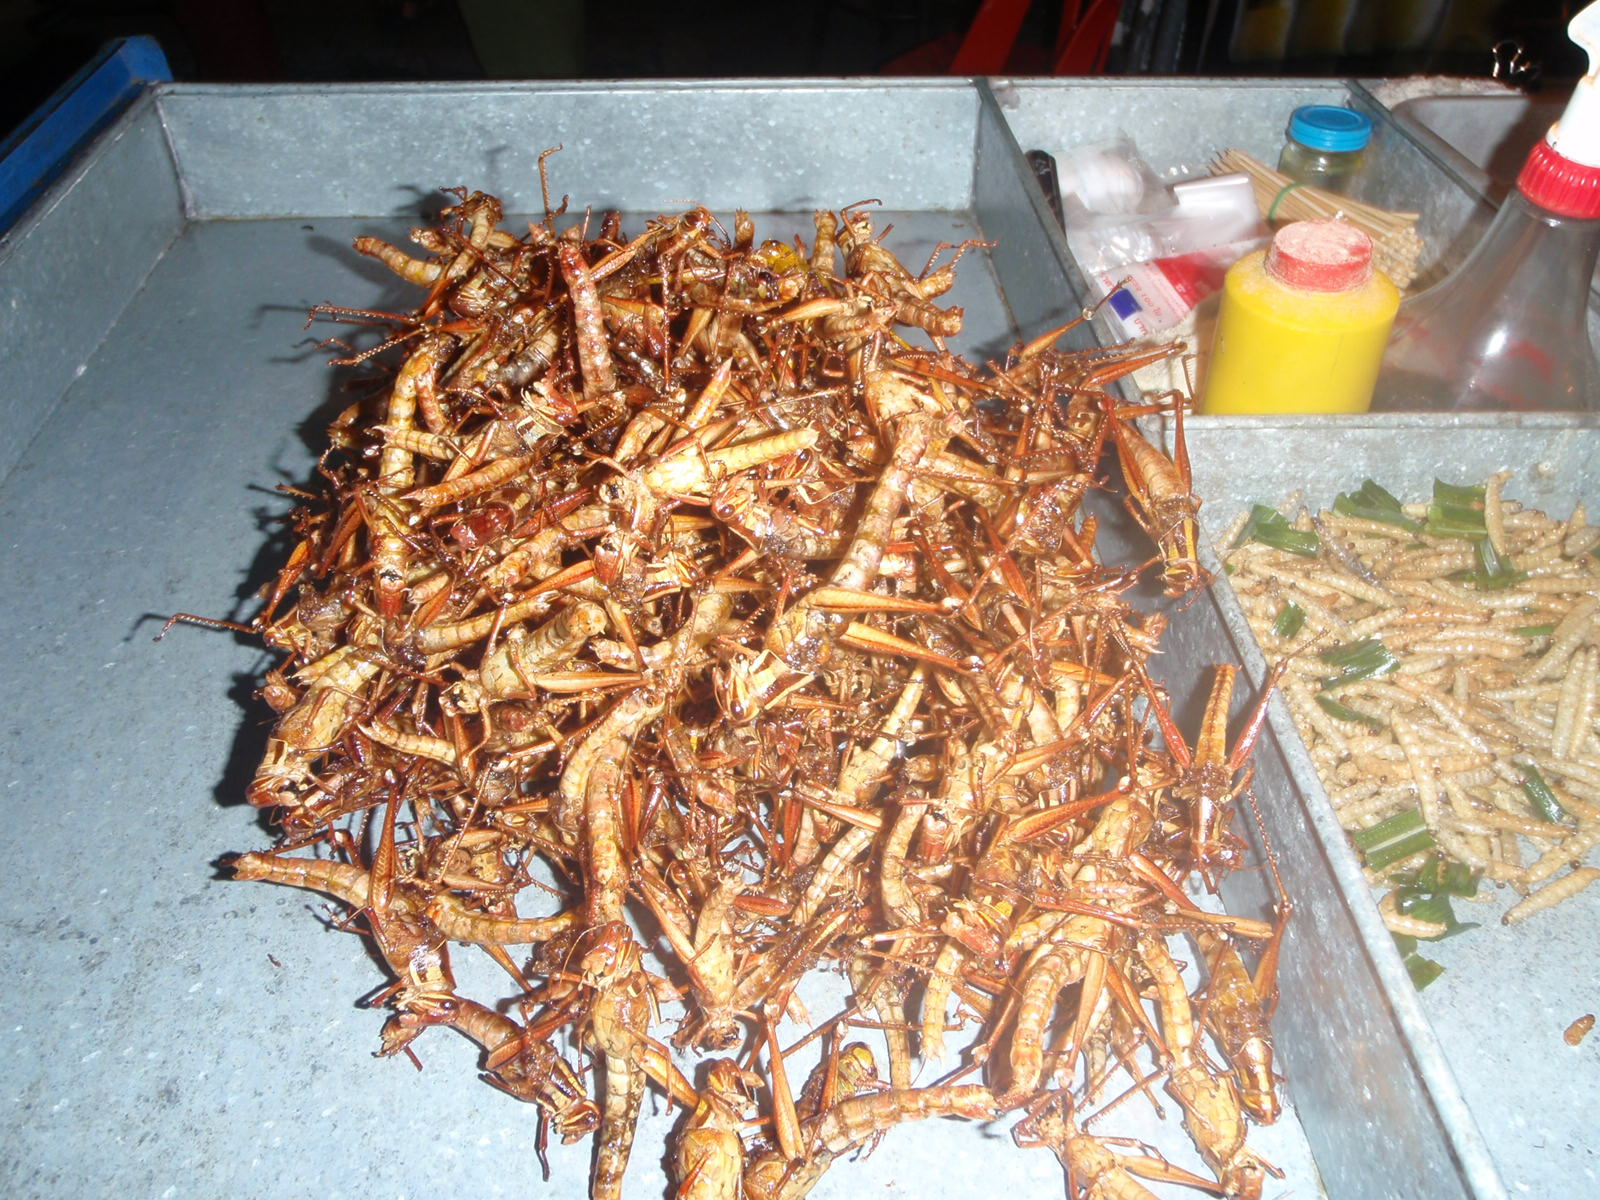 Hungry? Deep fried insects